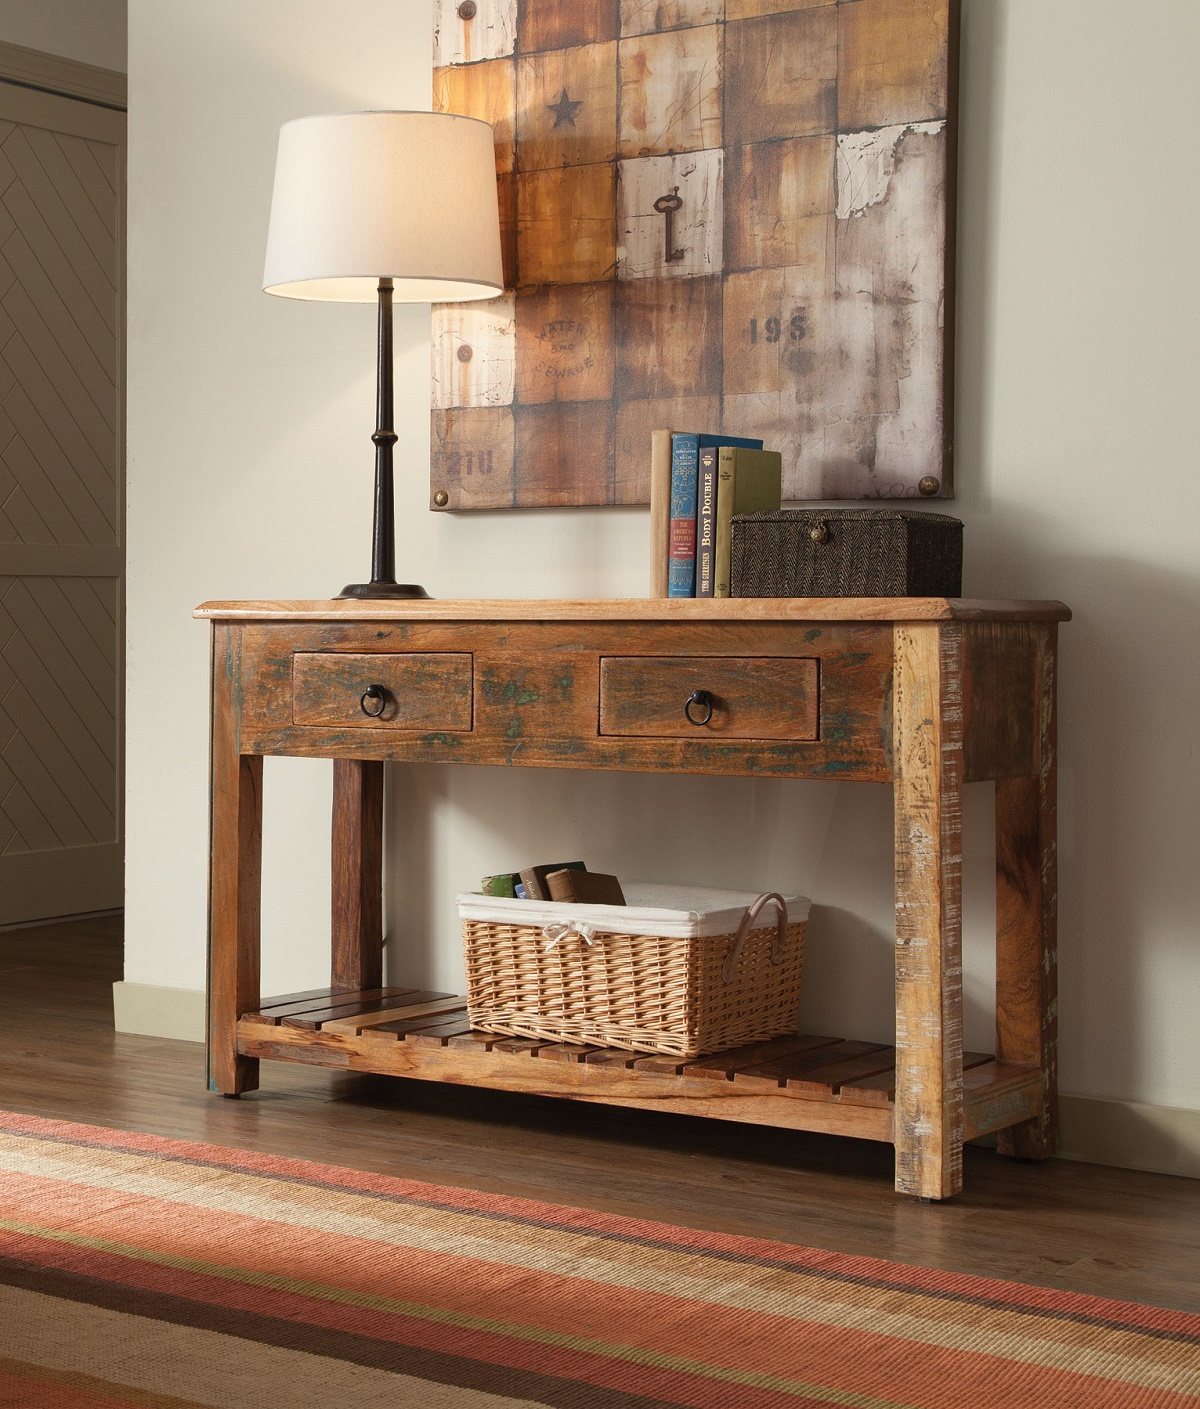 Roberts Collection 950364 Console Table In Reclaimed Wood